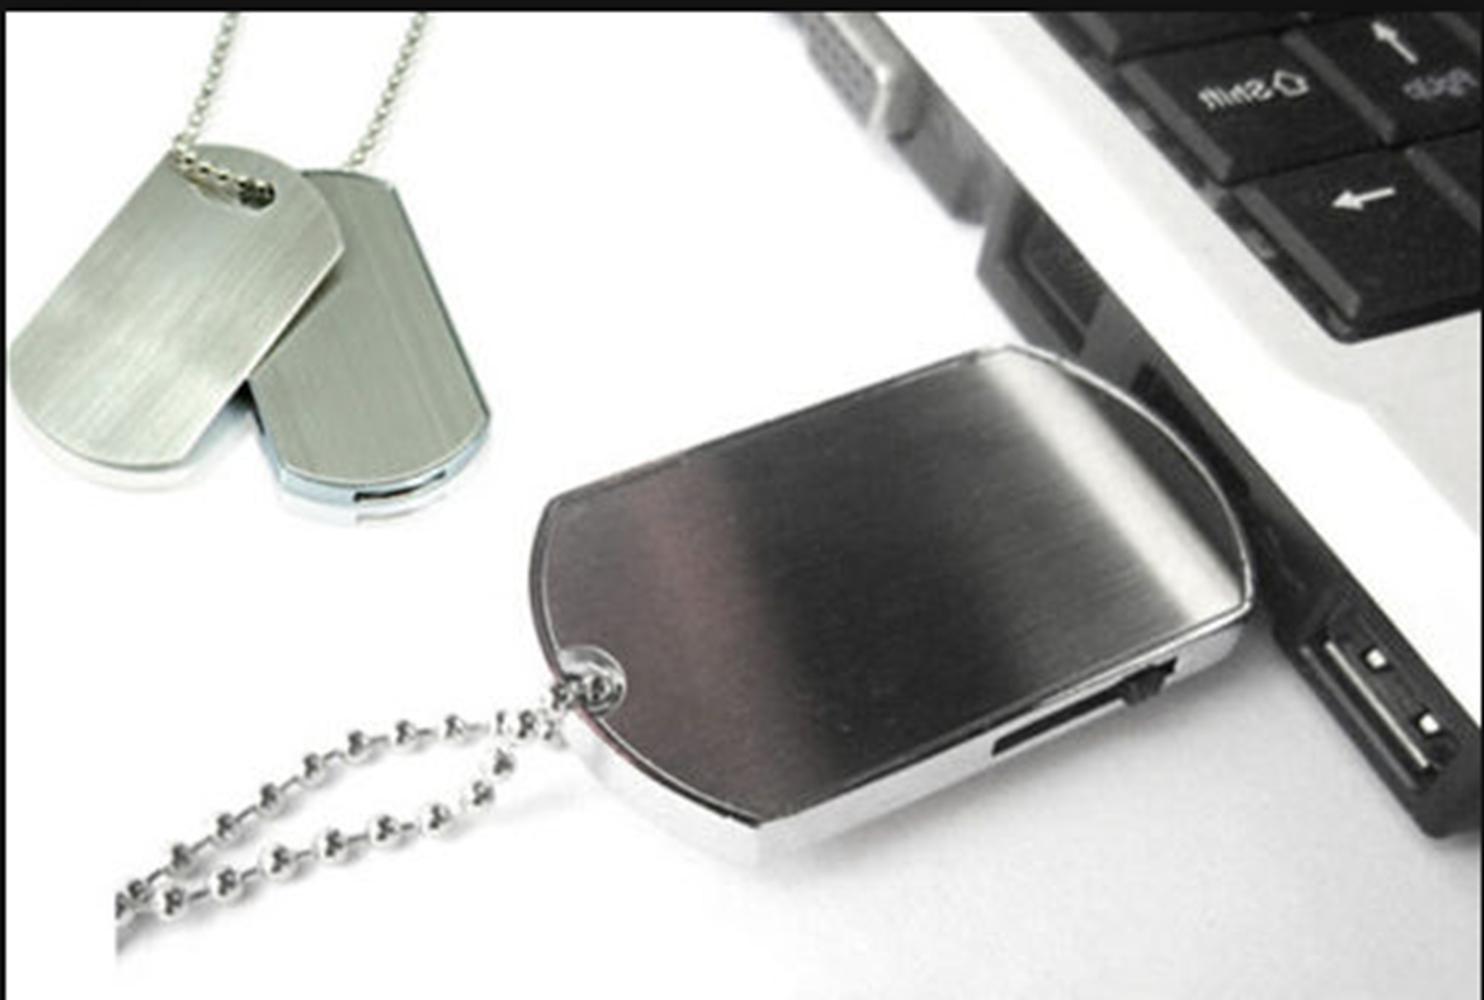 16/32GB Metal Tag Necklace Flash Gift